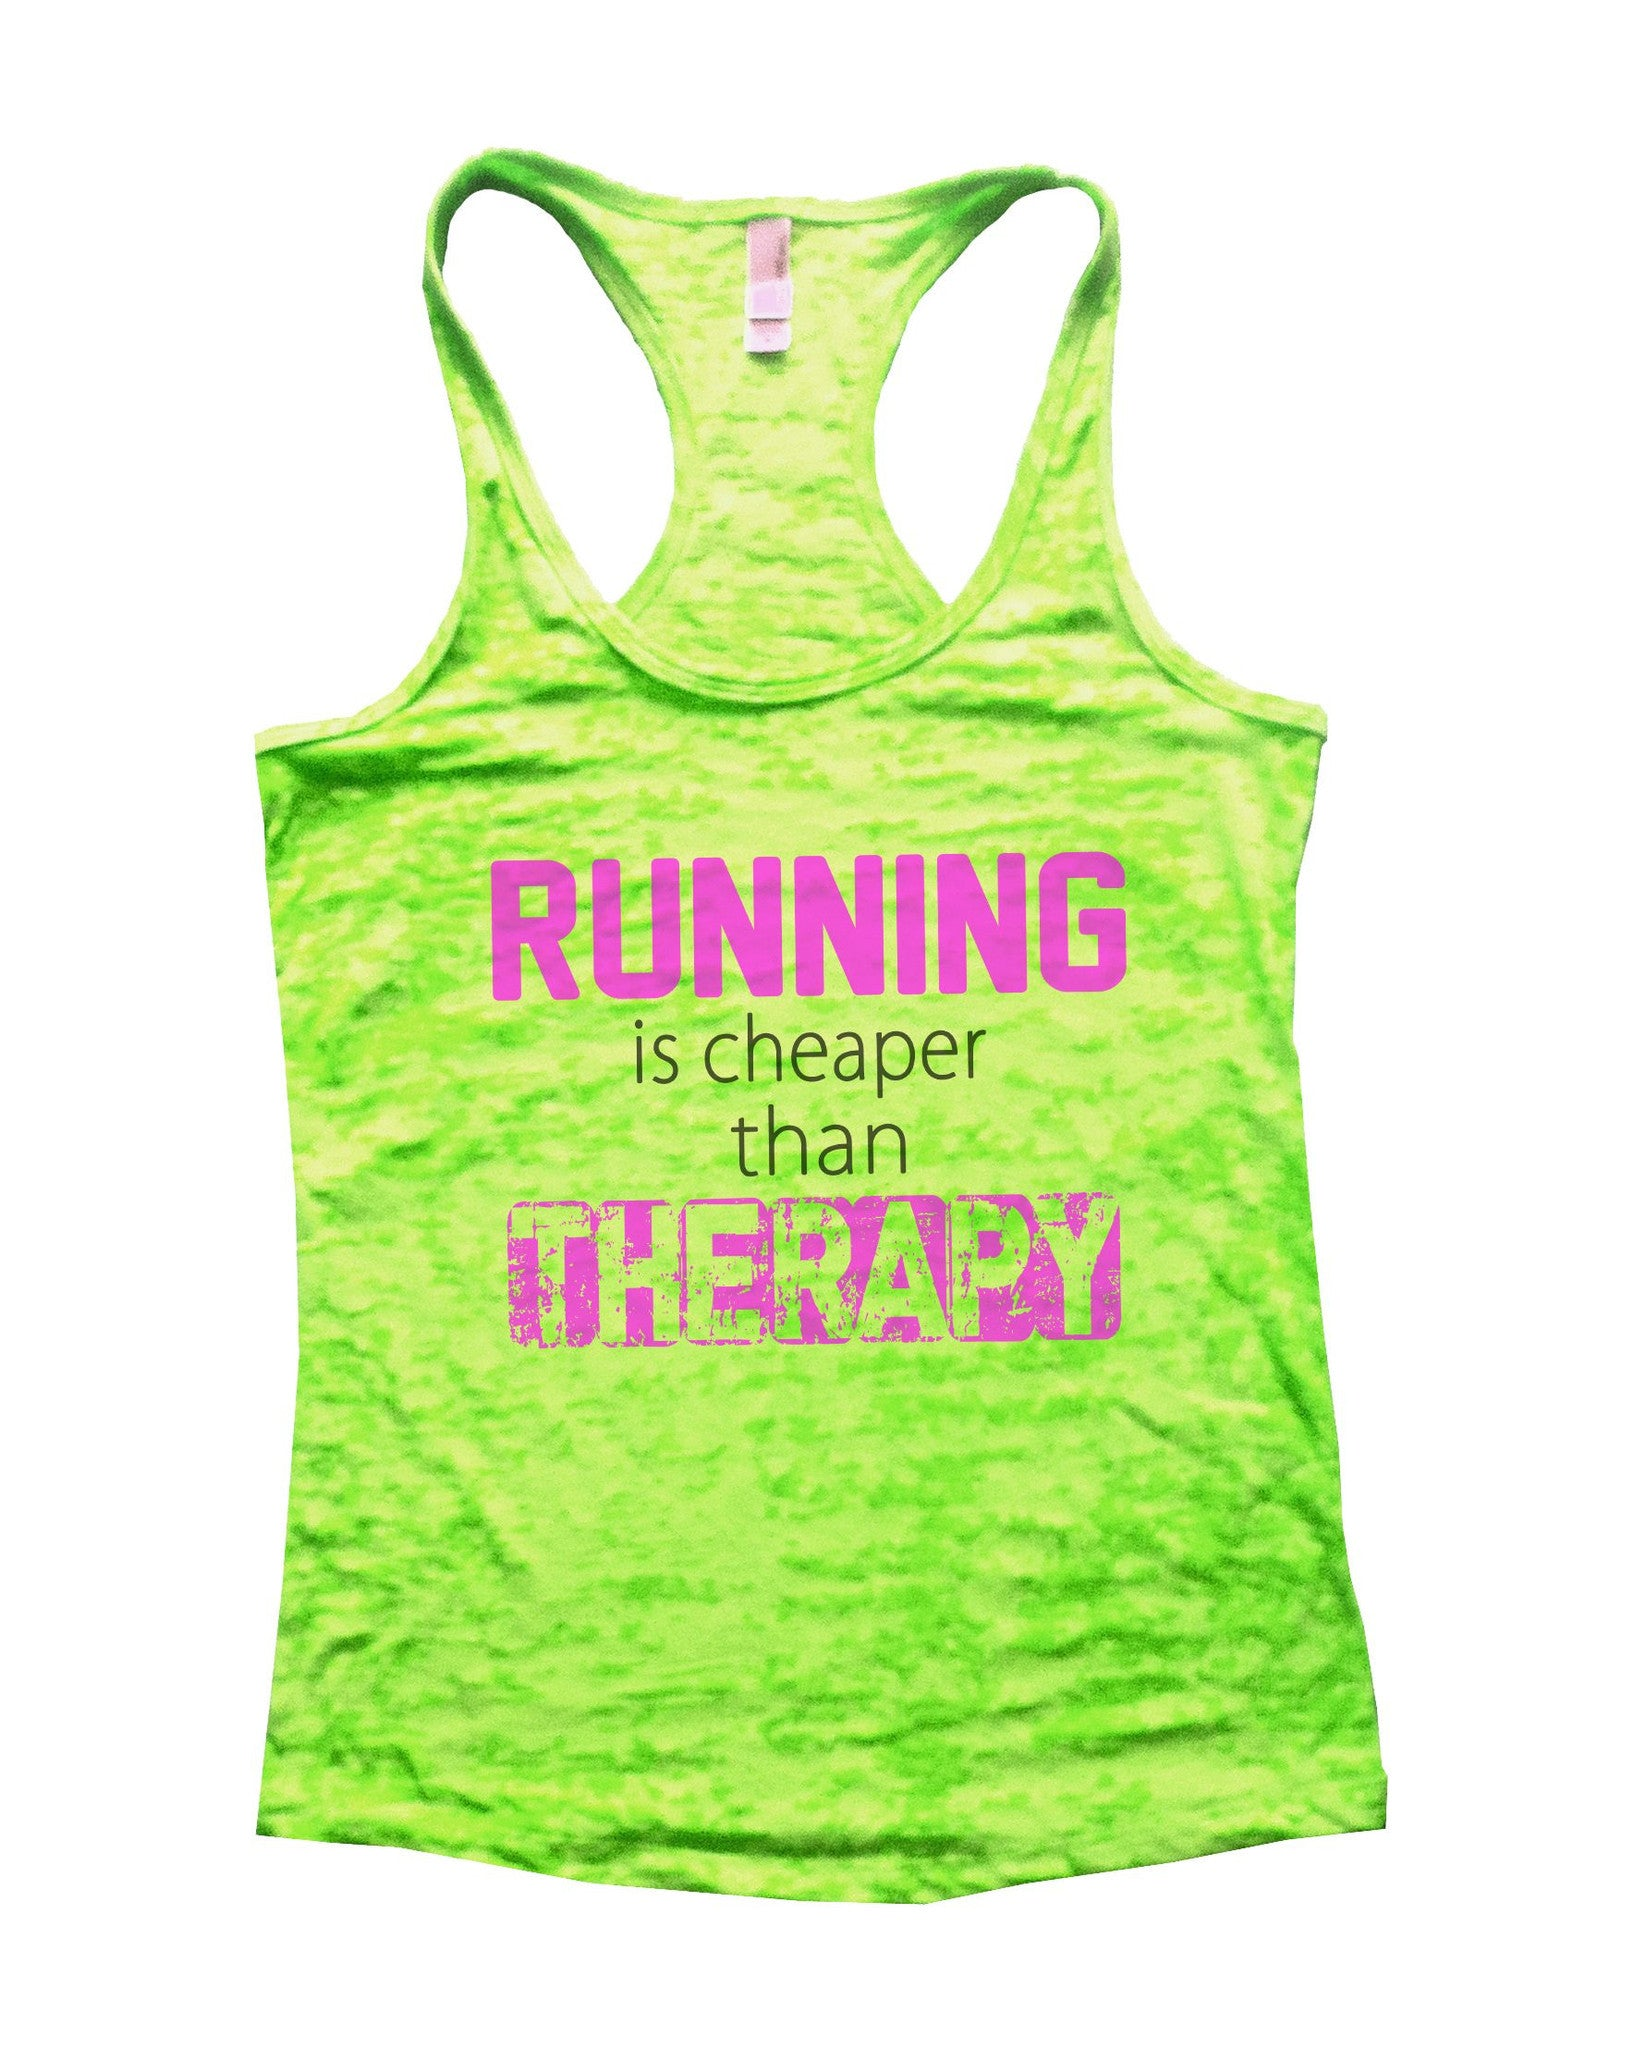 Running Is Cheaper Than Therapy Burnout Tank Top By BurnoutTankTops.com - 674 - Funny Shirts Tank Tops Burnouts and Triblends  - 1